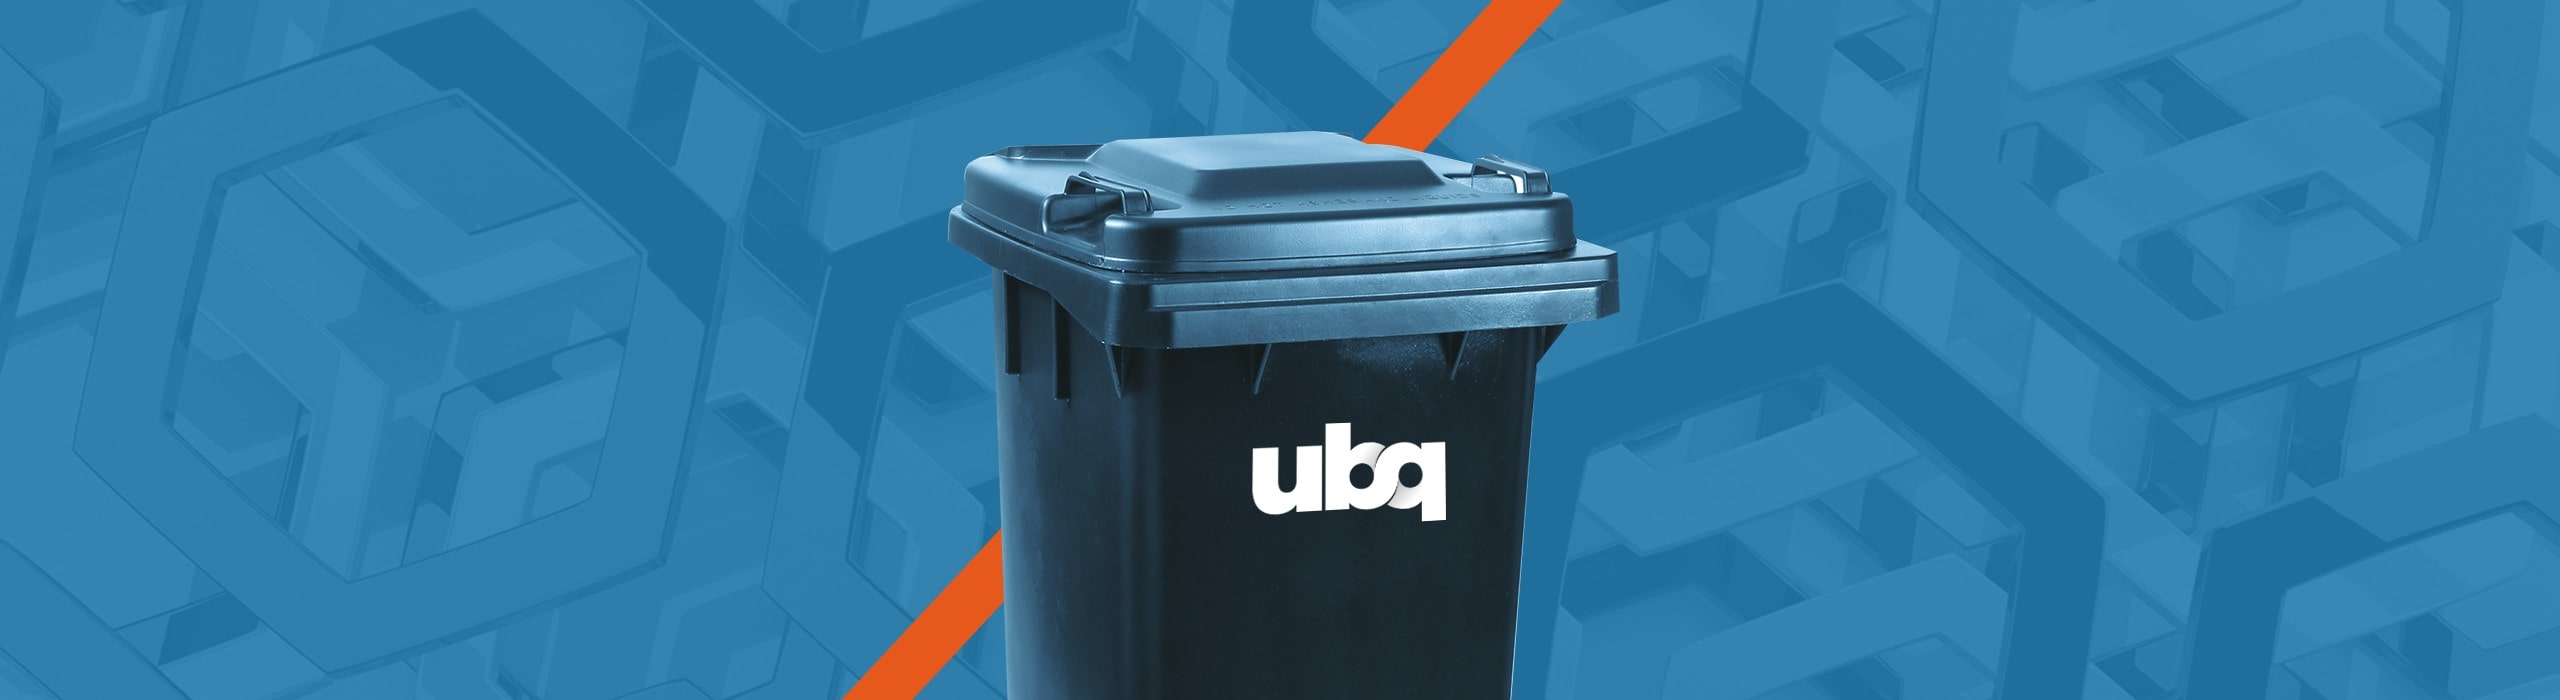 UBQ - natie-ubq-trash-can - Natie Branding Agency